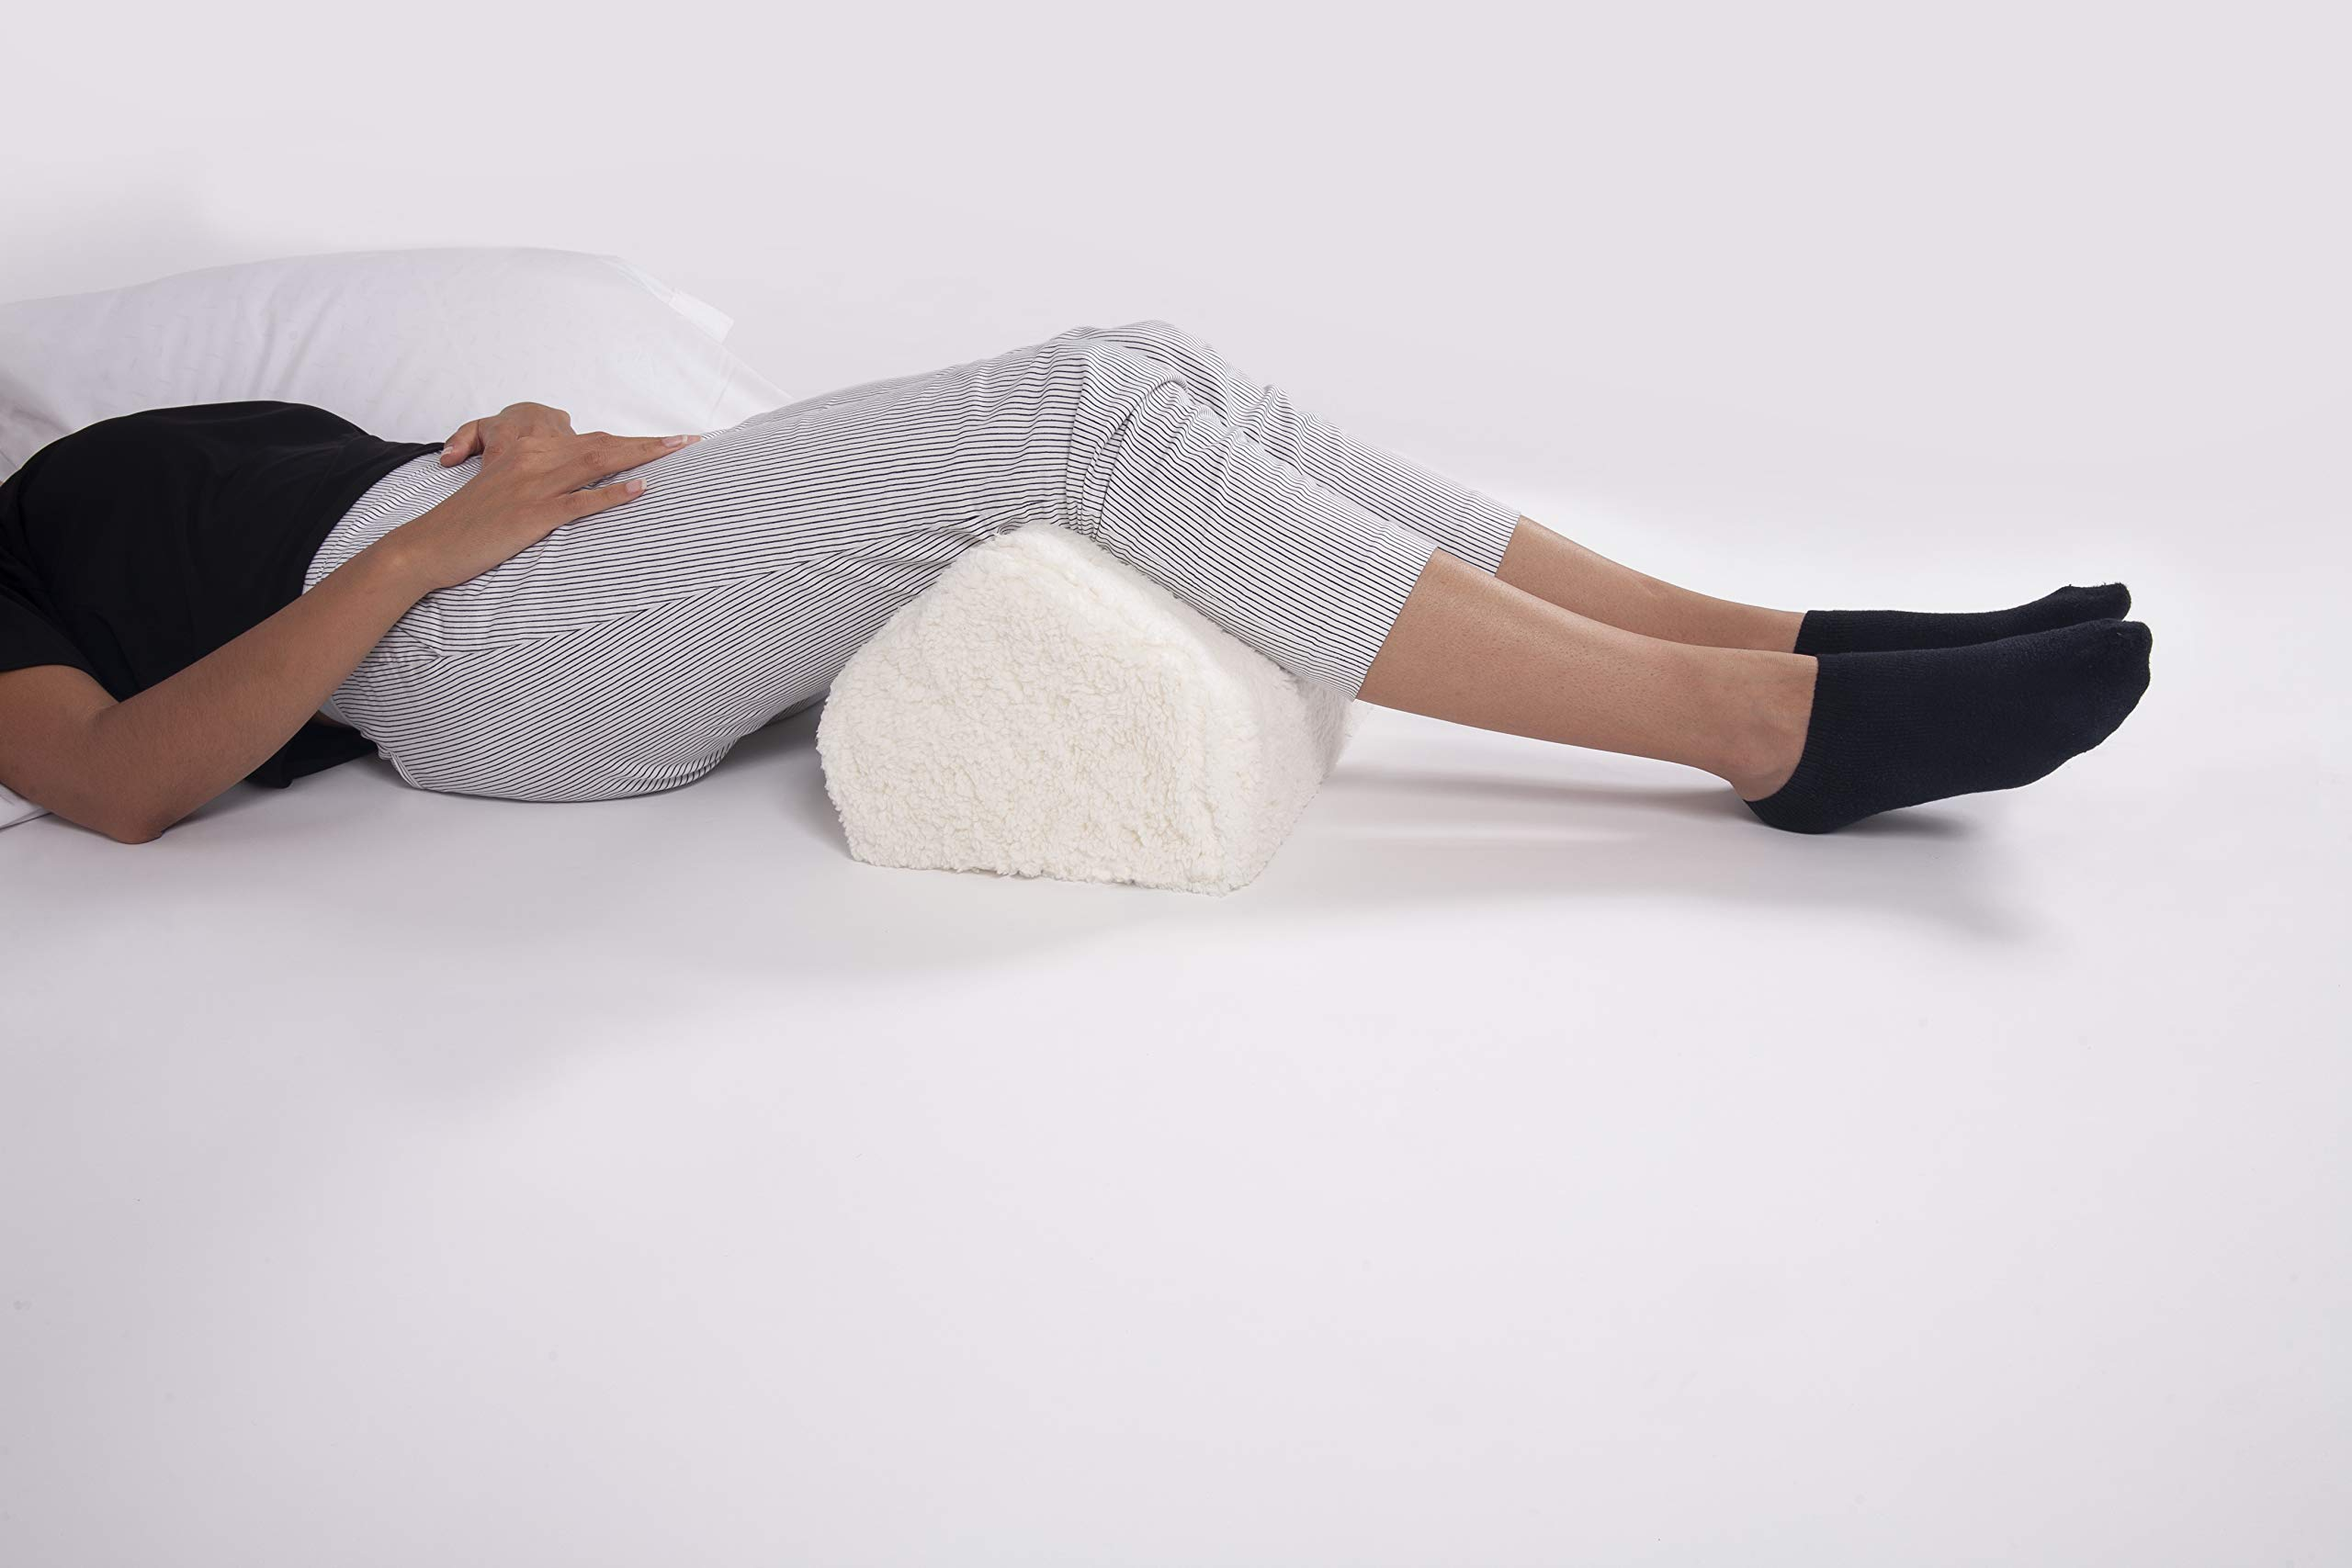 North American Health and Wellness Leg Lifter Pillow - Elevate Legs Back Pressure Relief - Machine Washable Fleece Cover